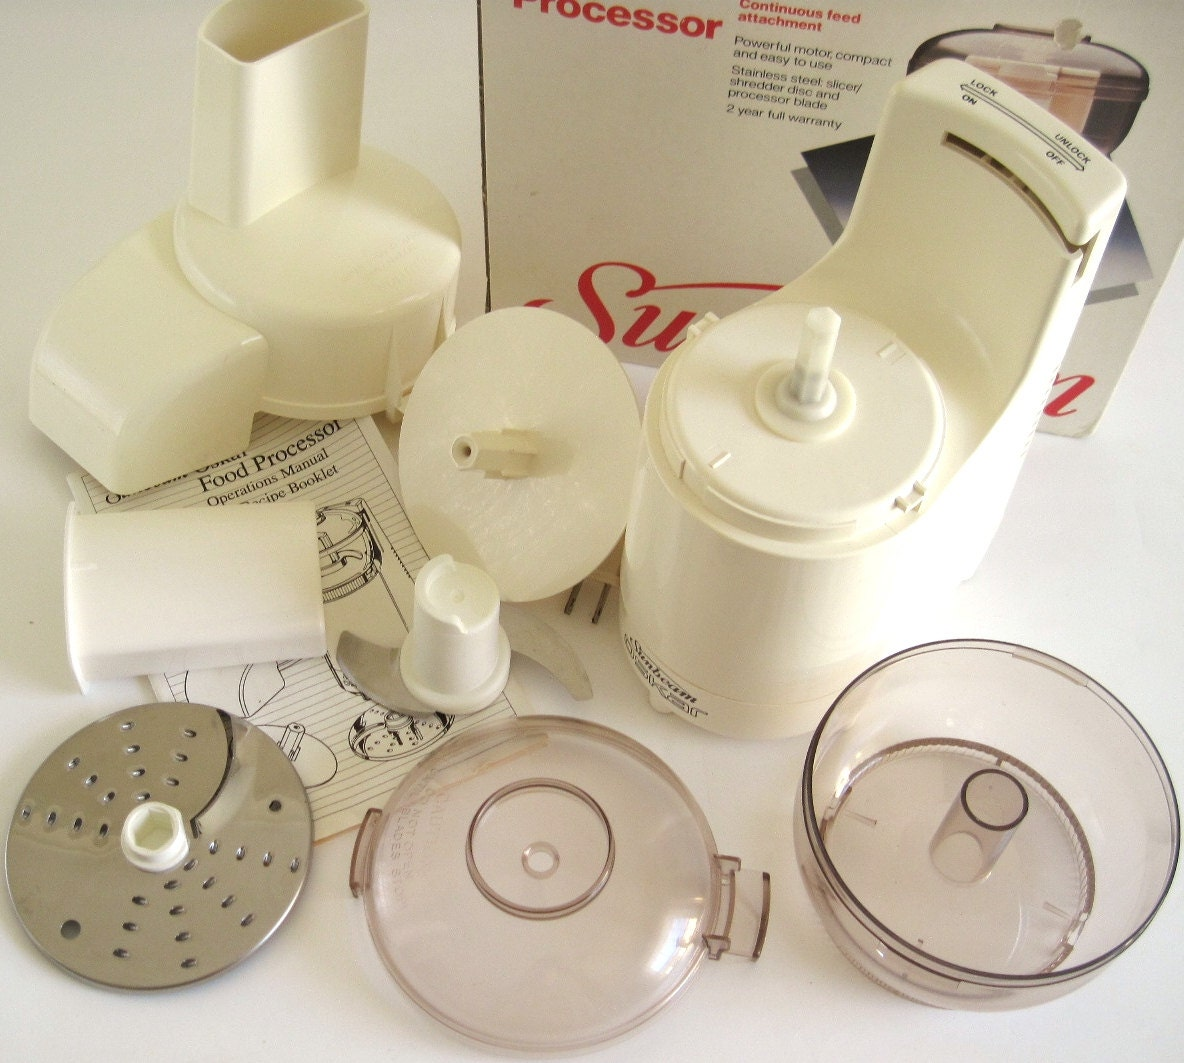 Sunbeam Oskar Food Processor Model